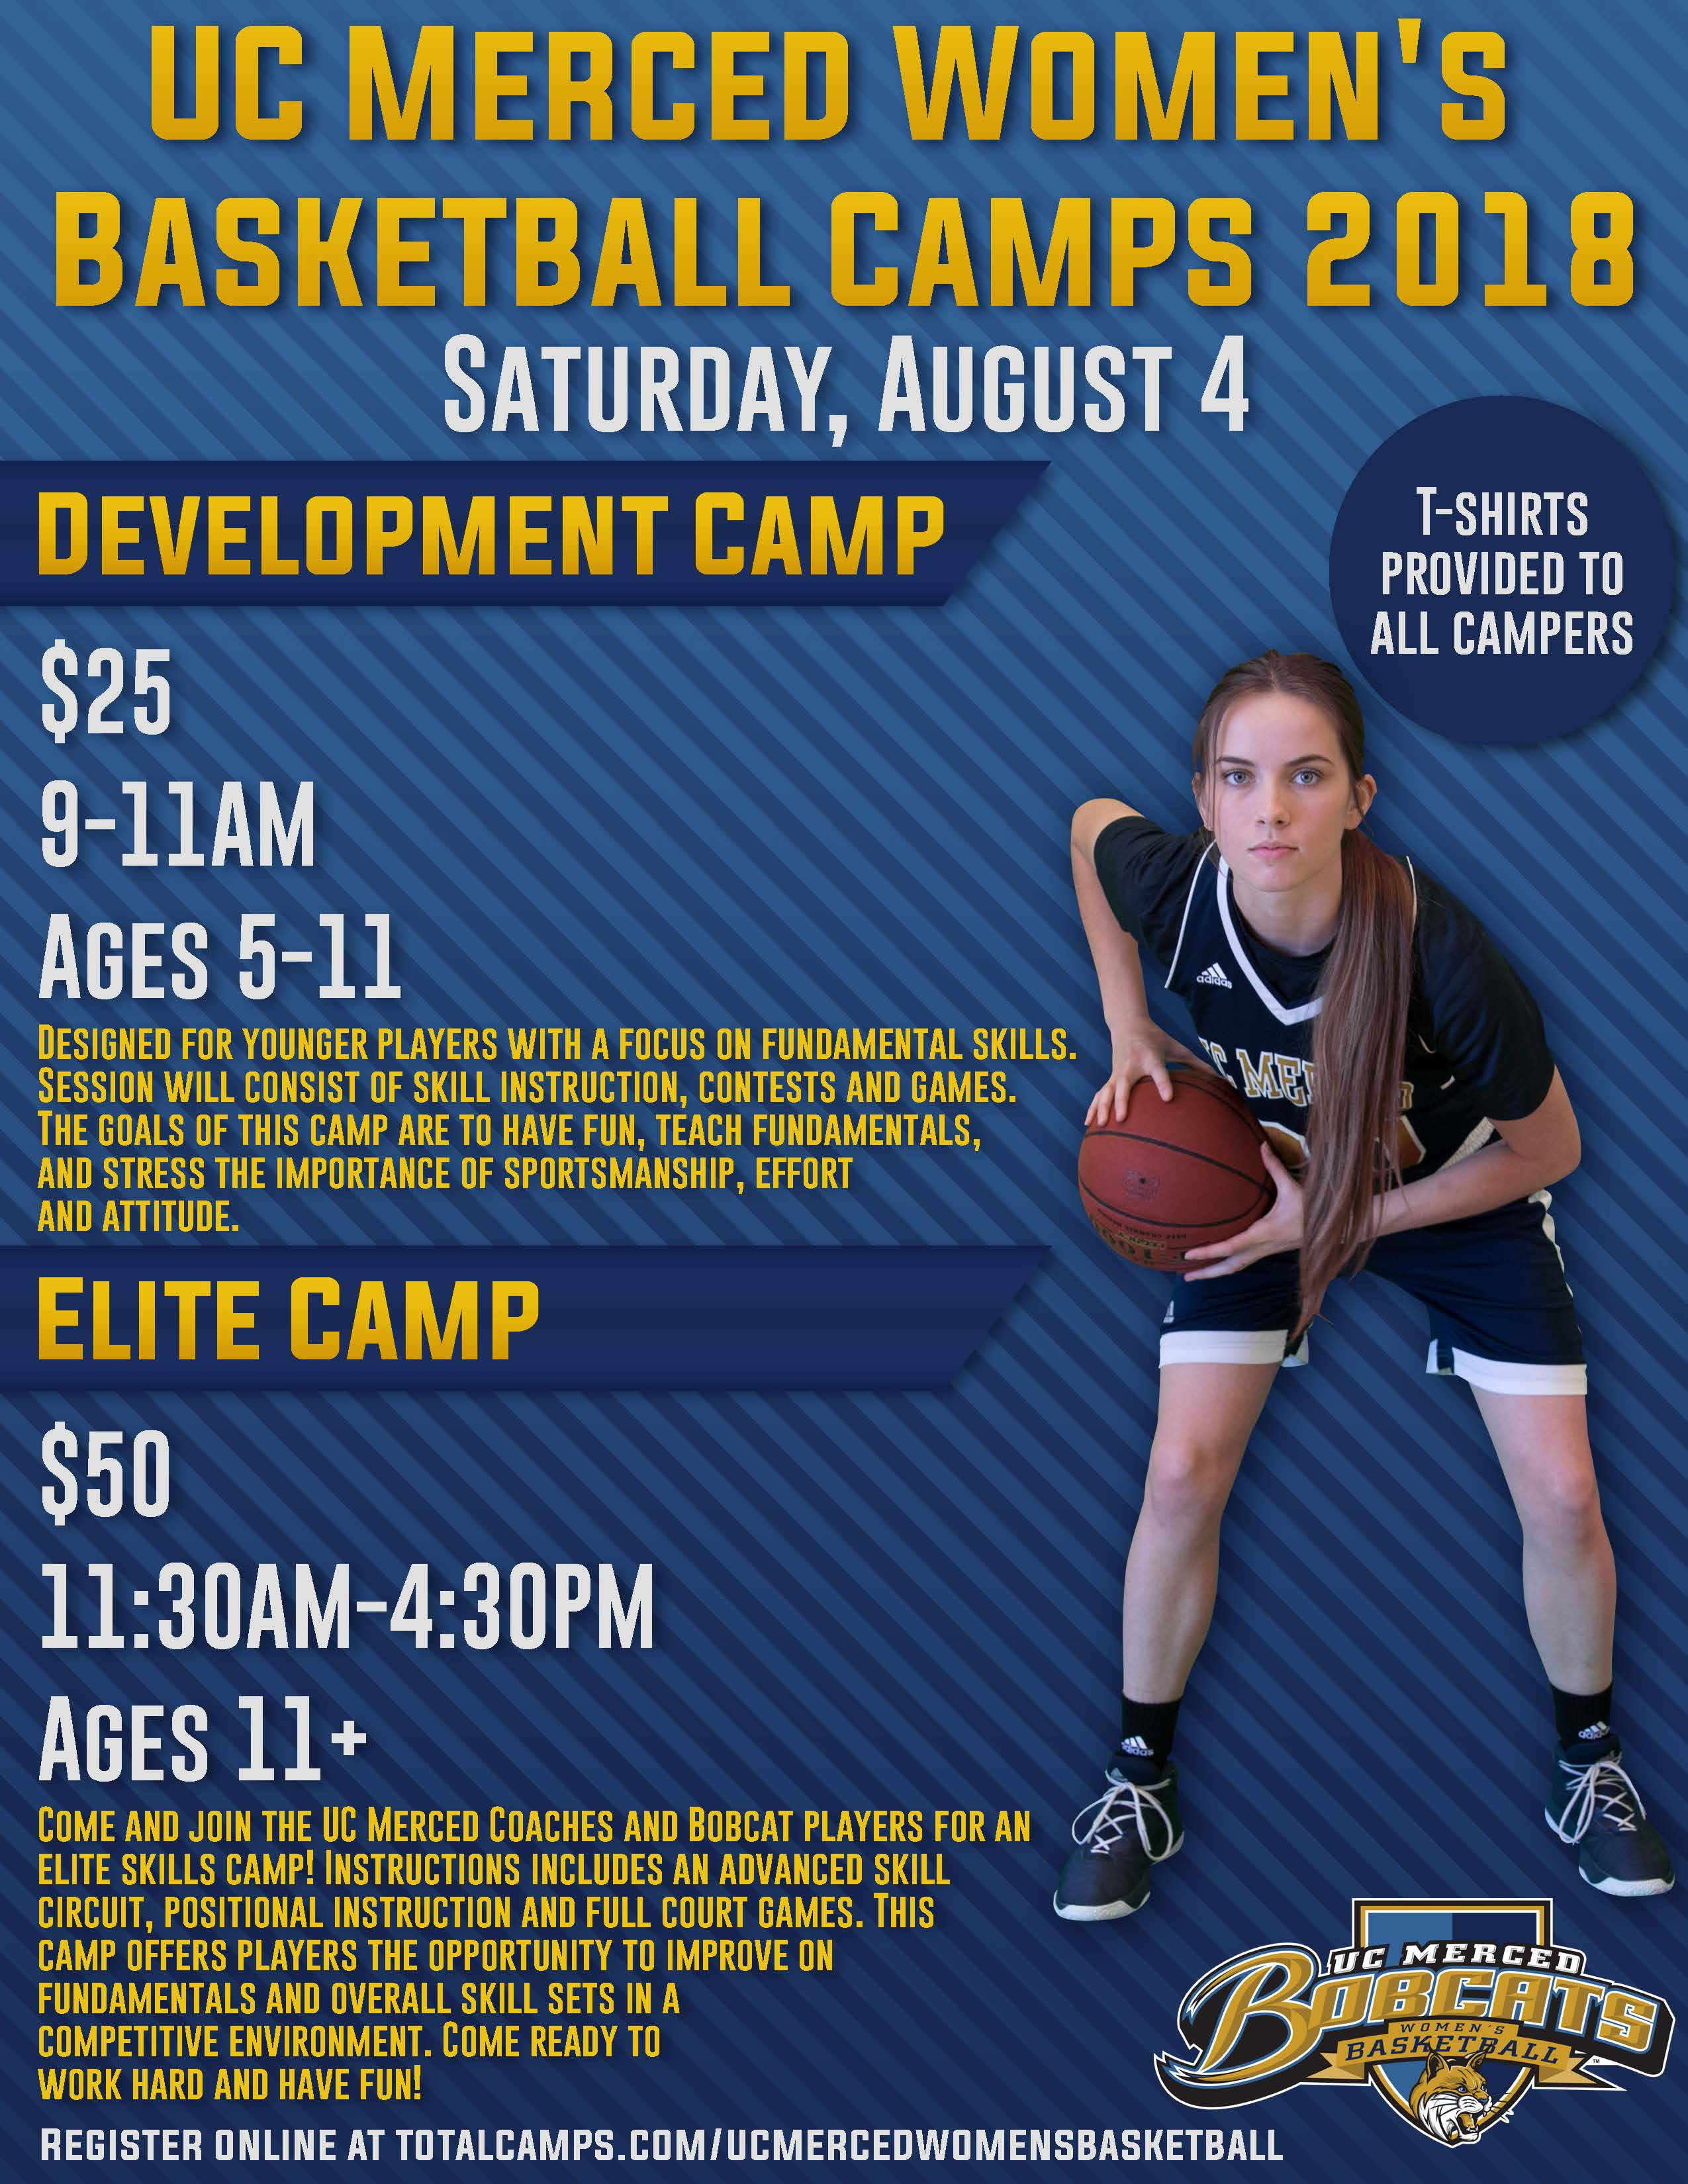 UC Merced Women's Basketball Camps